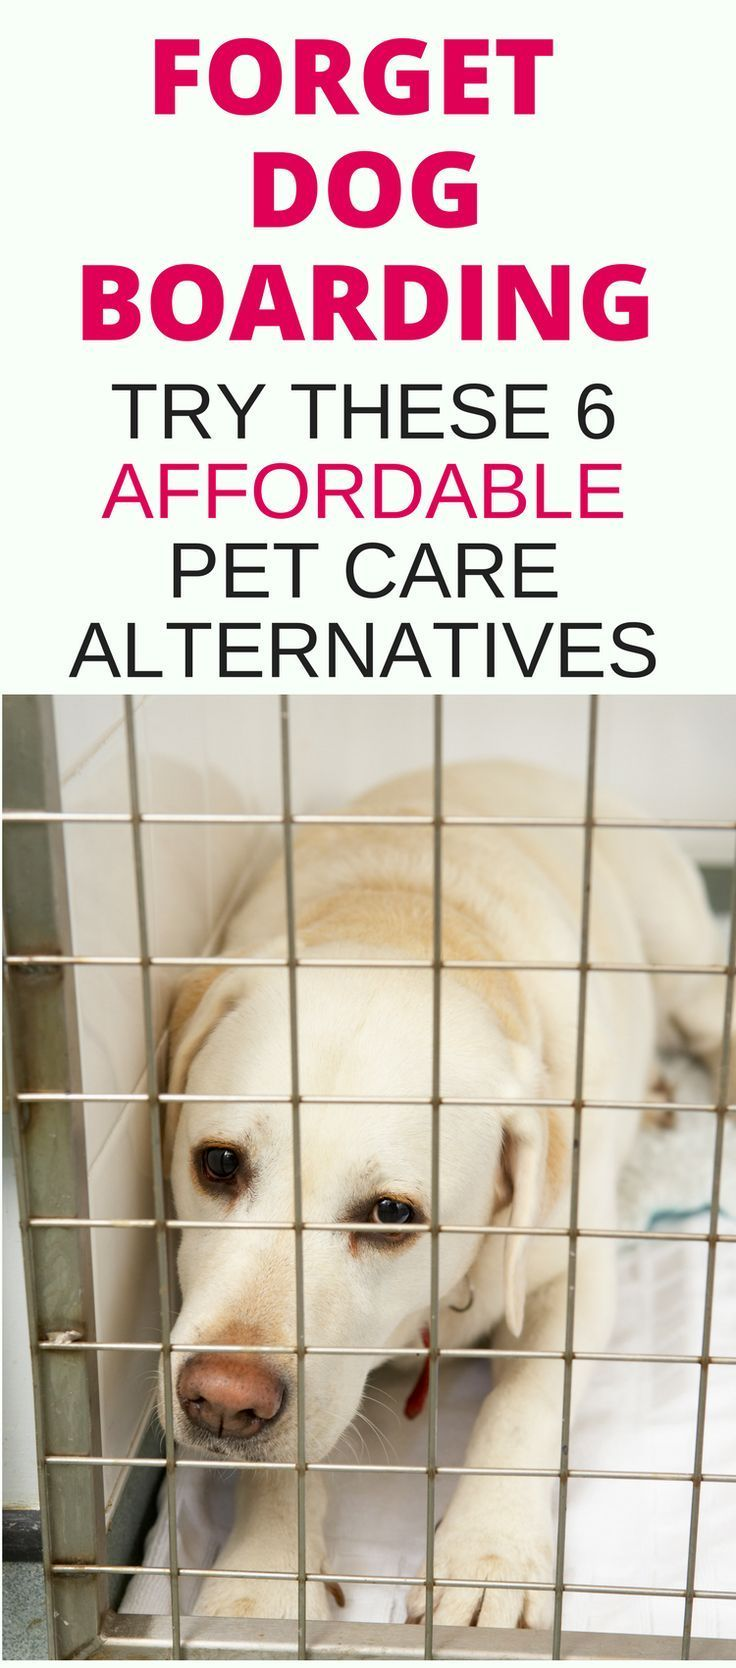 Forget Dog Boarding When It Comes To Affordable Pet Care Learn